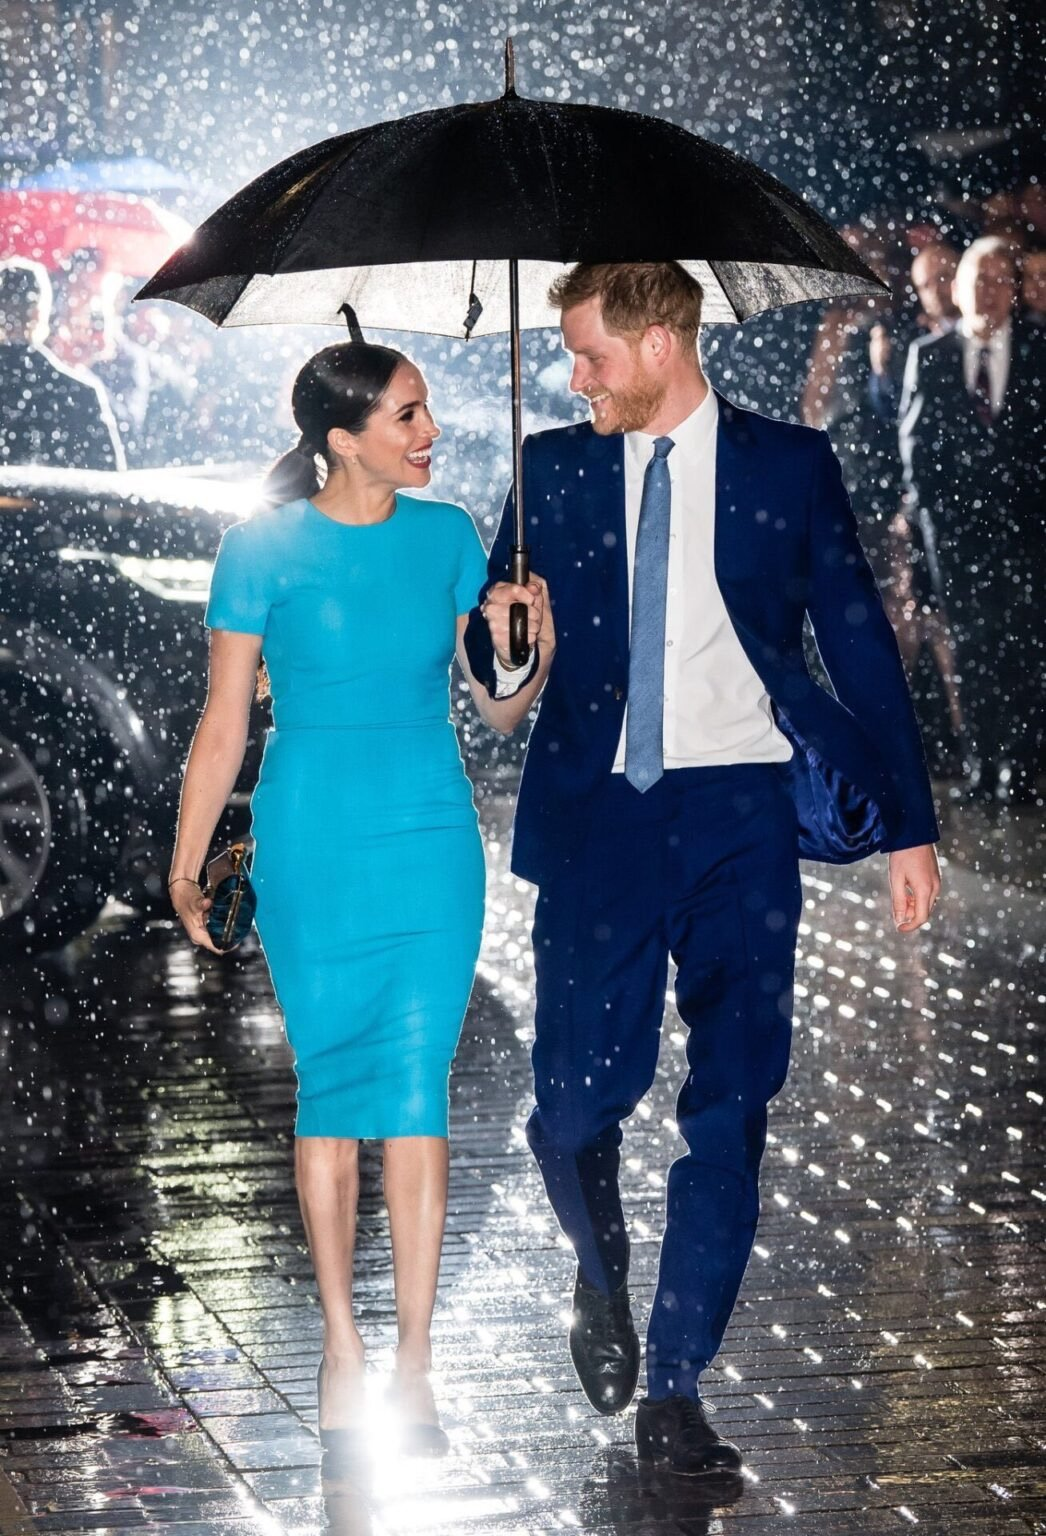 Duchess of Sussex Meghan Markle smiles at Prince Harry under an umbrella wearing bright turquoise colored Victoria Beckham dress